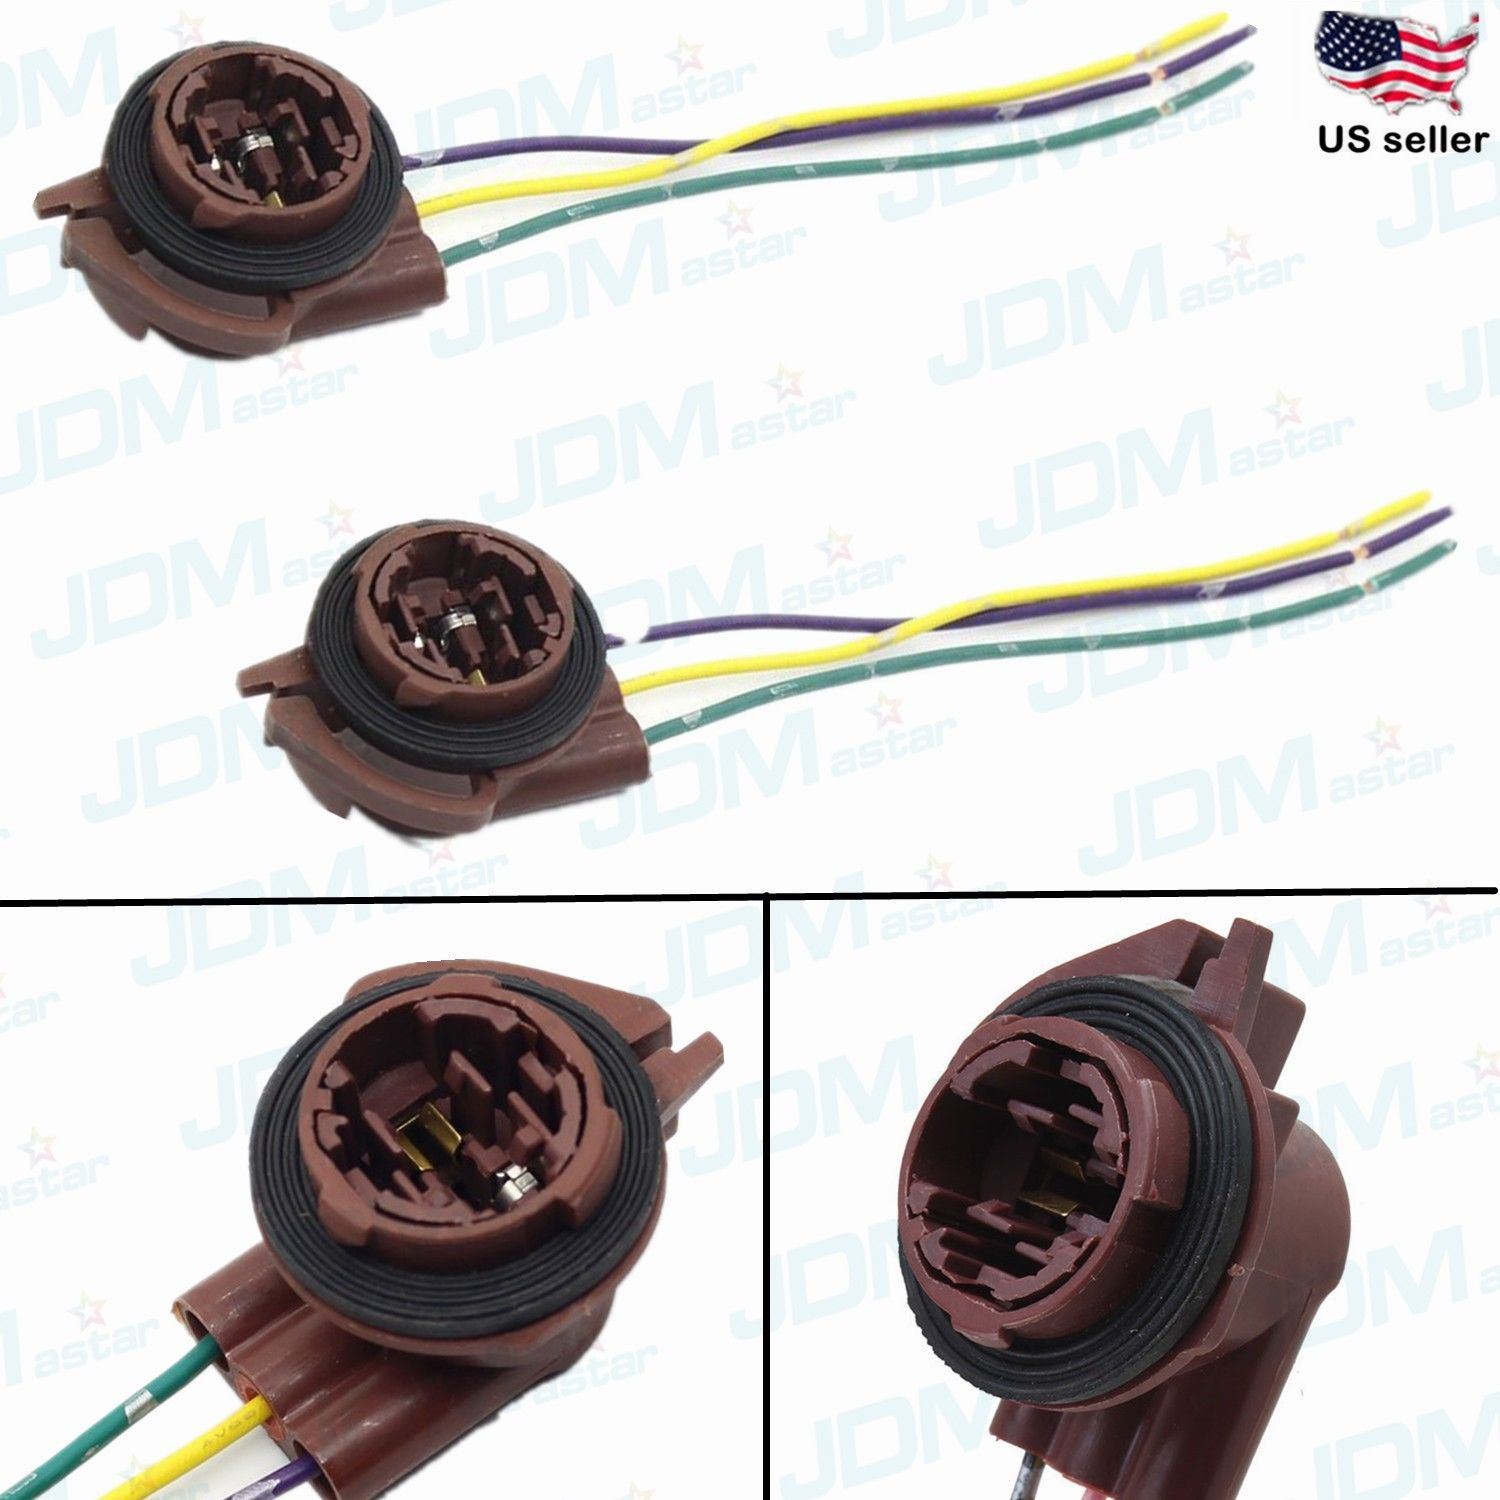 3157A socket harness 1?versionId=luZVsWTmtBB0K6WrOp6TCHwbqxcaKjlO jdm astar 3157 4157na bulb socket turn signal light harness wire  at gsmx.co